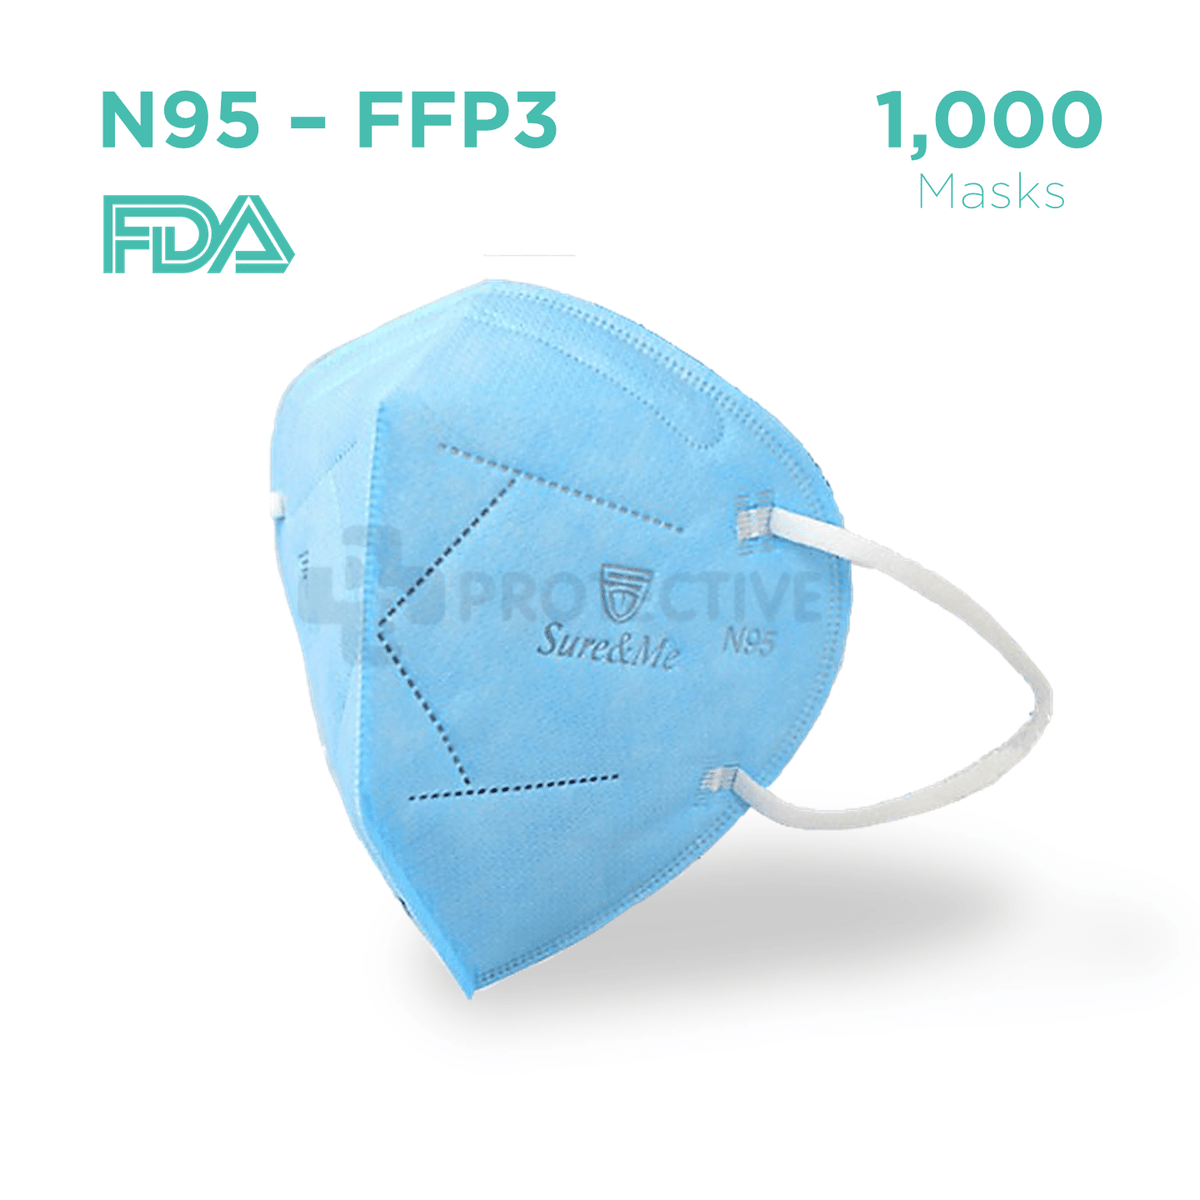 N95 FFP3 Medical Protective Face Mask - Pack of 1,000.